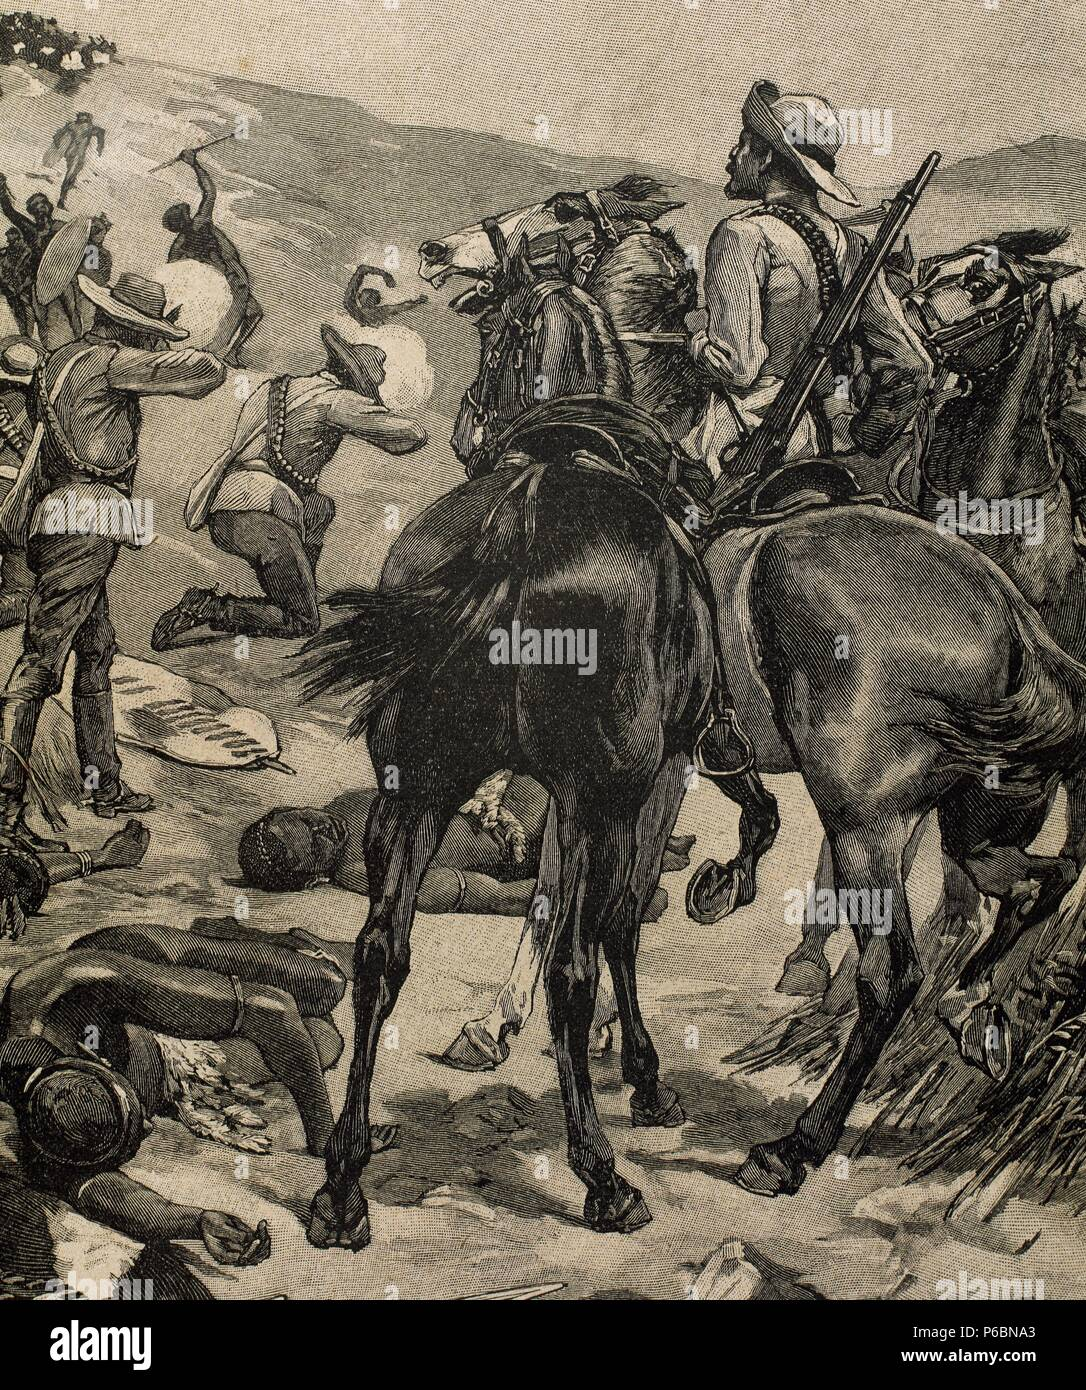 Anglo-Zulu War. Fought in 1879 between the British Empire and the Zulu Kingdom. Engraving by Marguerite. La Ilustracion Iberica, 1898. - Stock Image